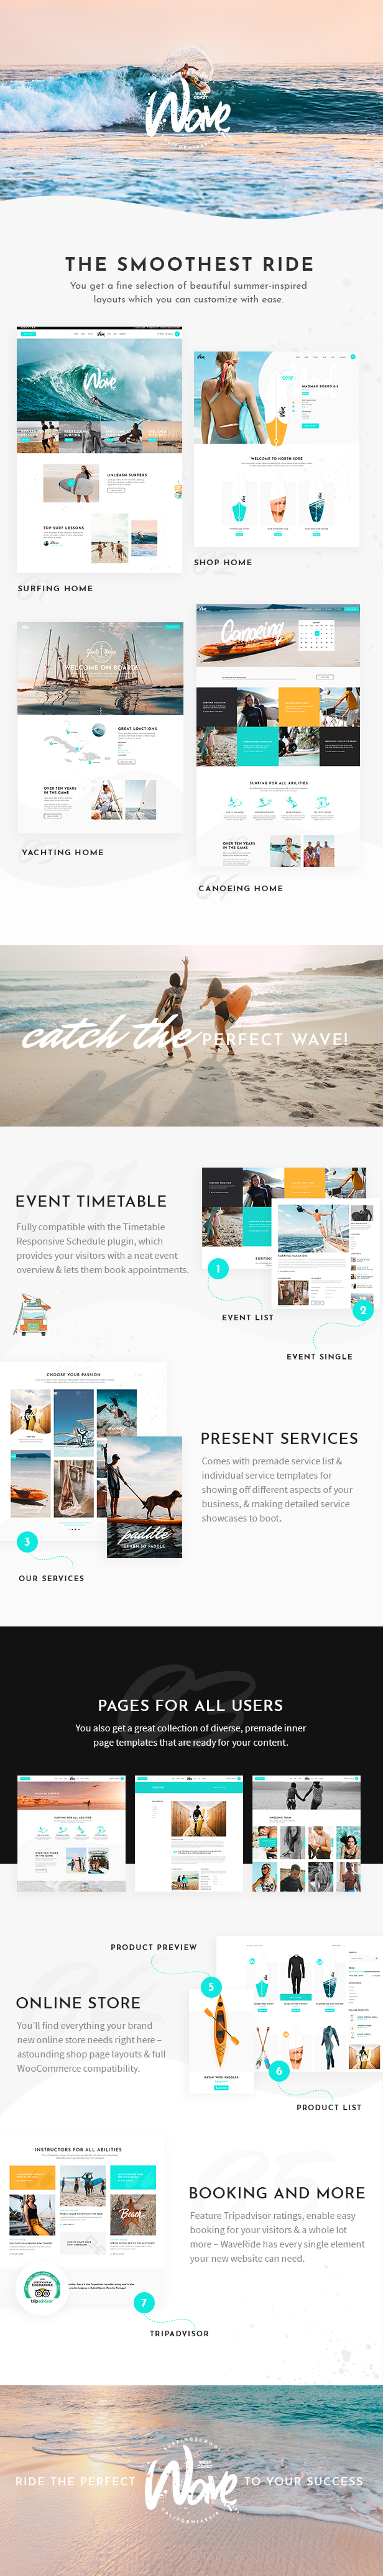 WaveRide - Surfing and Water Sports Theme - 2